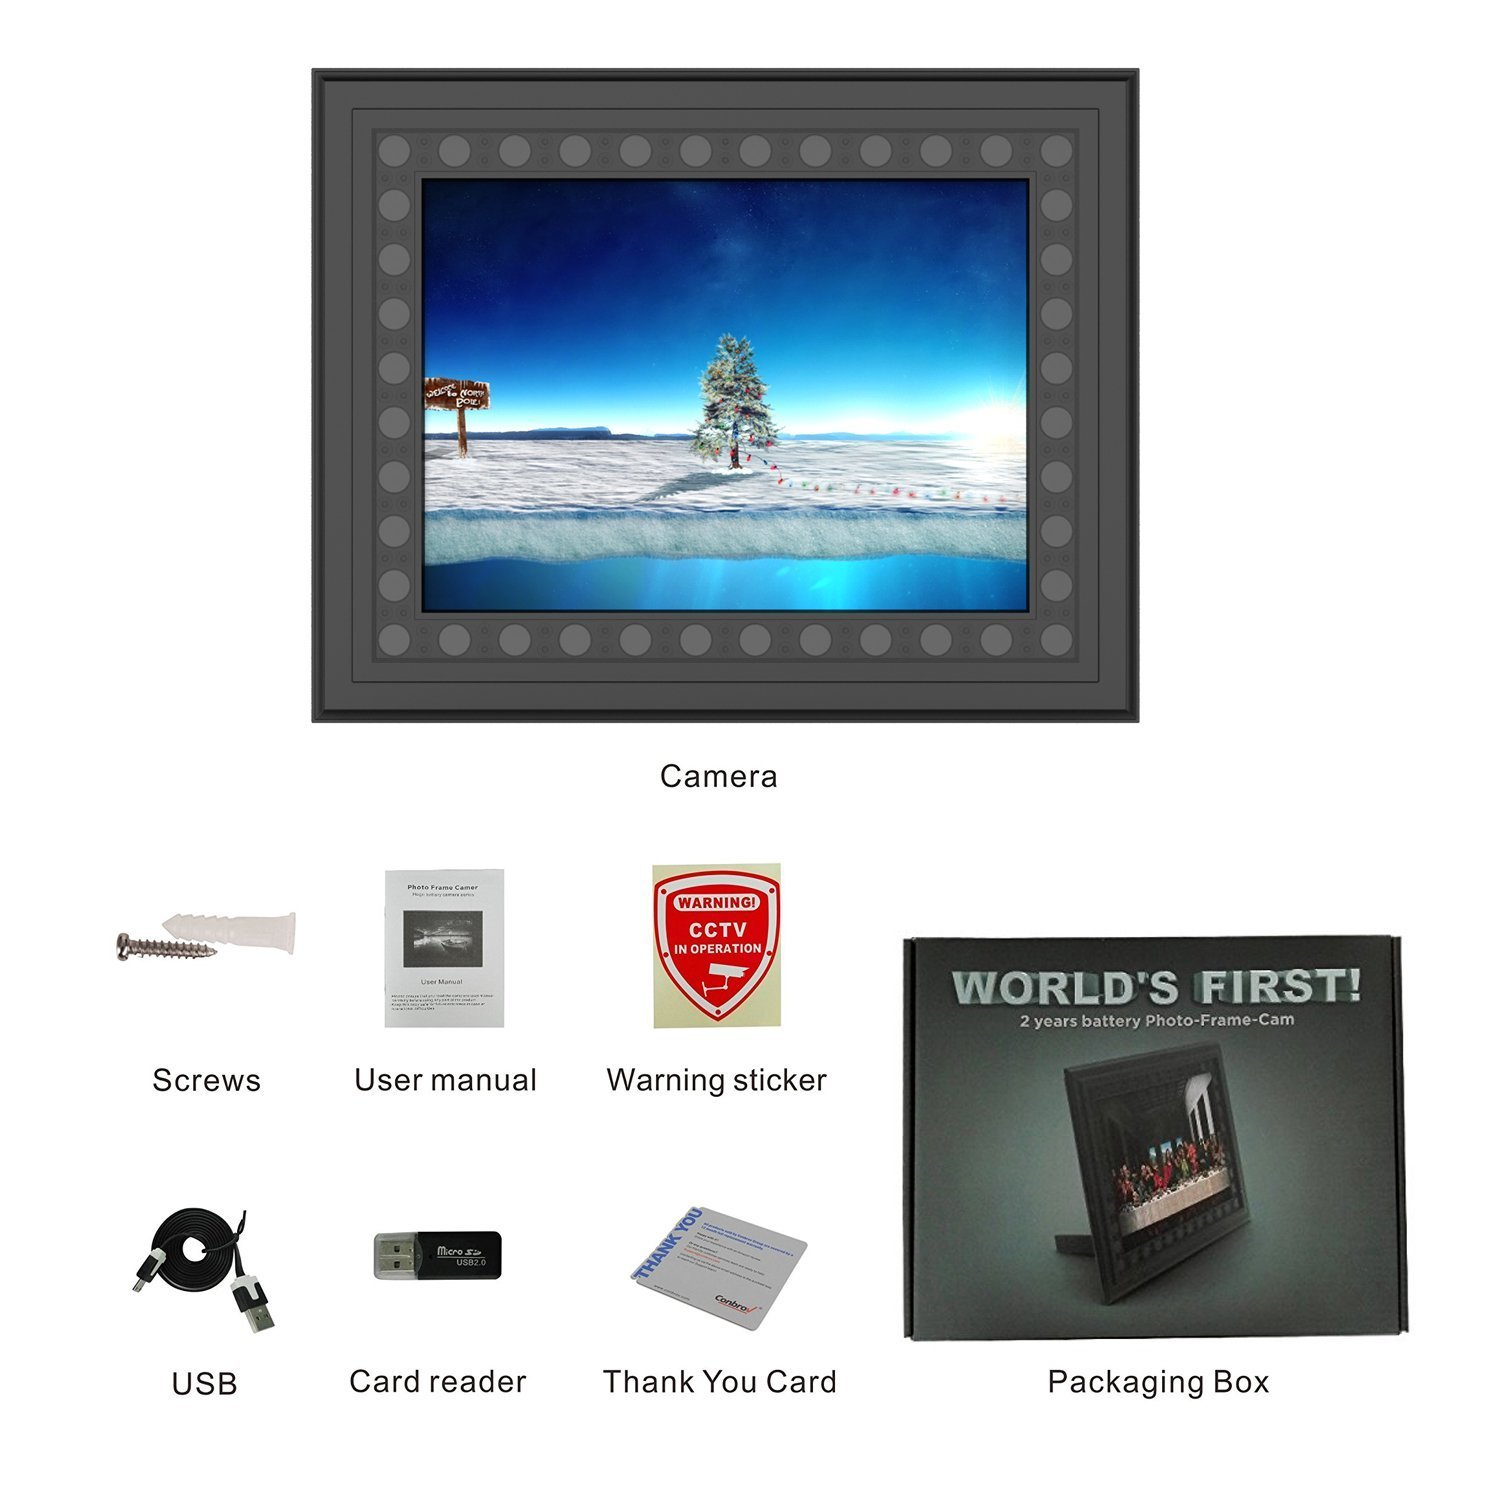 Hidden Spy Camera Photo Frame,Portocam Picture Frame Nanny Cam with Night Vision PIR Motion Activated Video Recorder Covert DVR with 2 Year Long Standby time by PORTOCAM (Image #7)